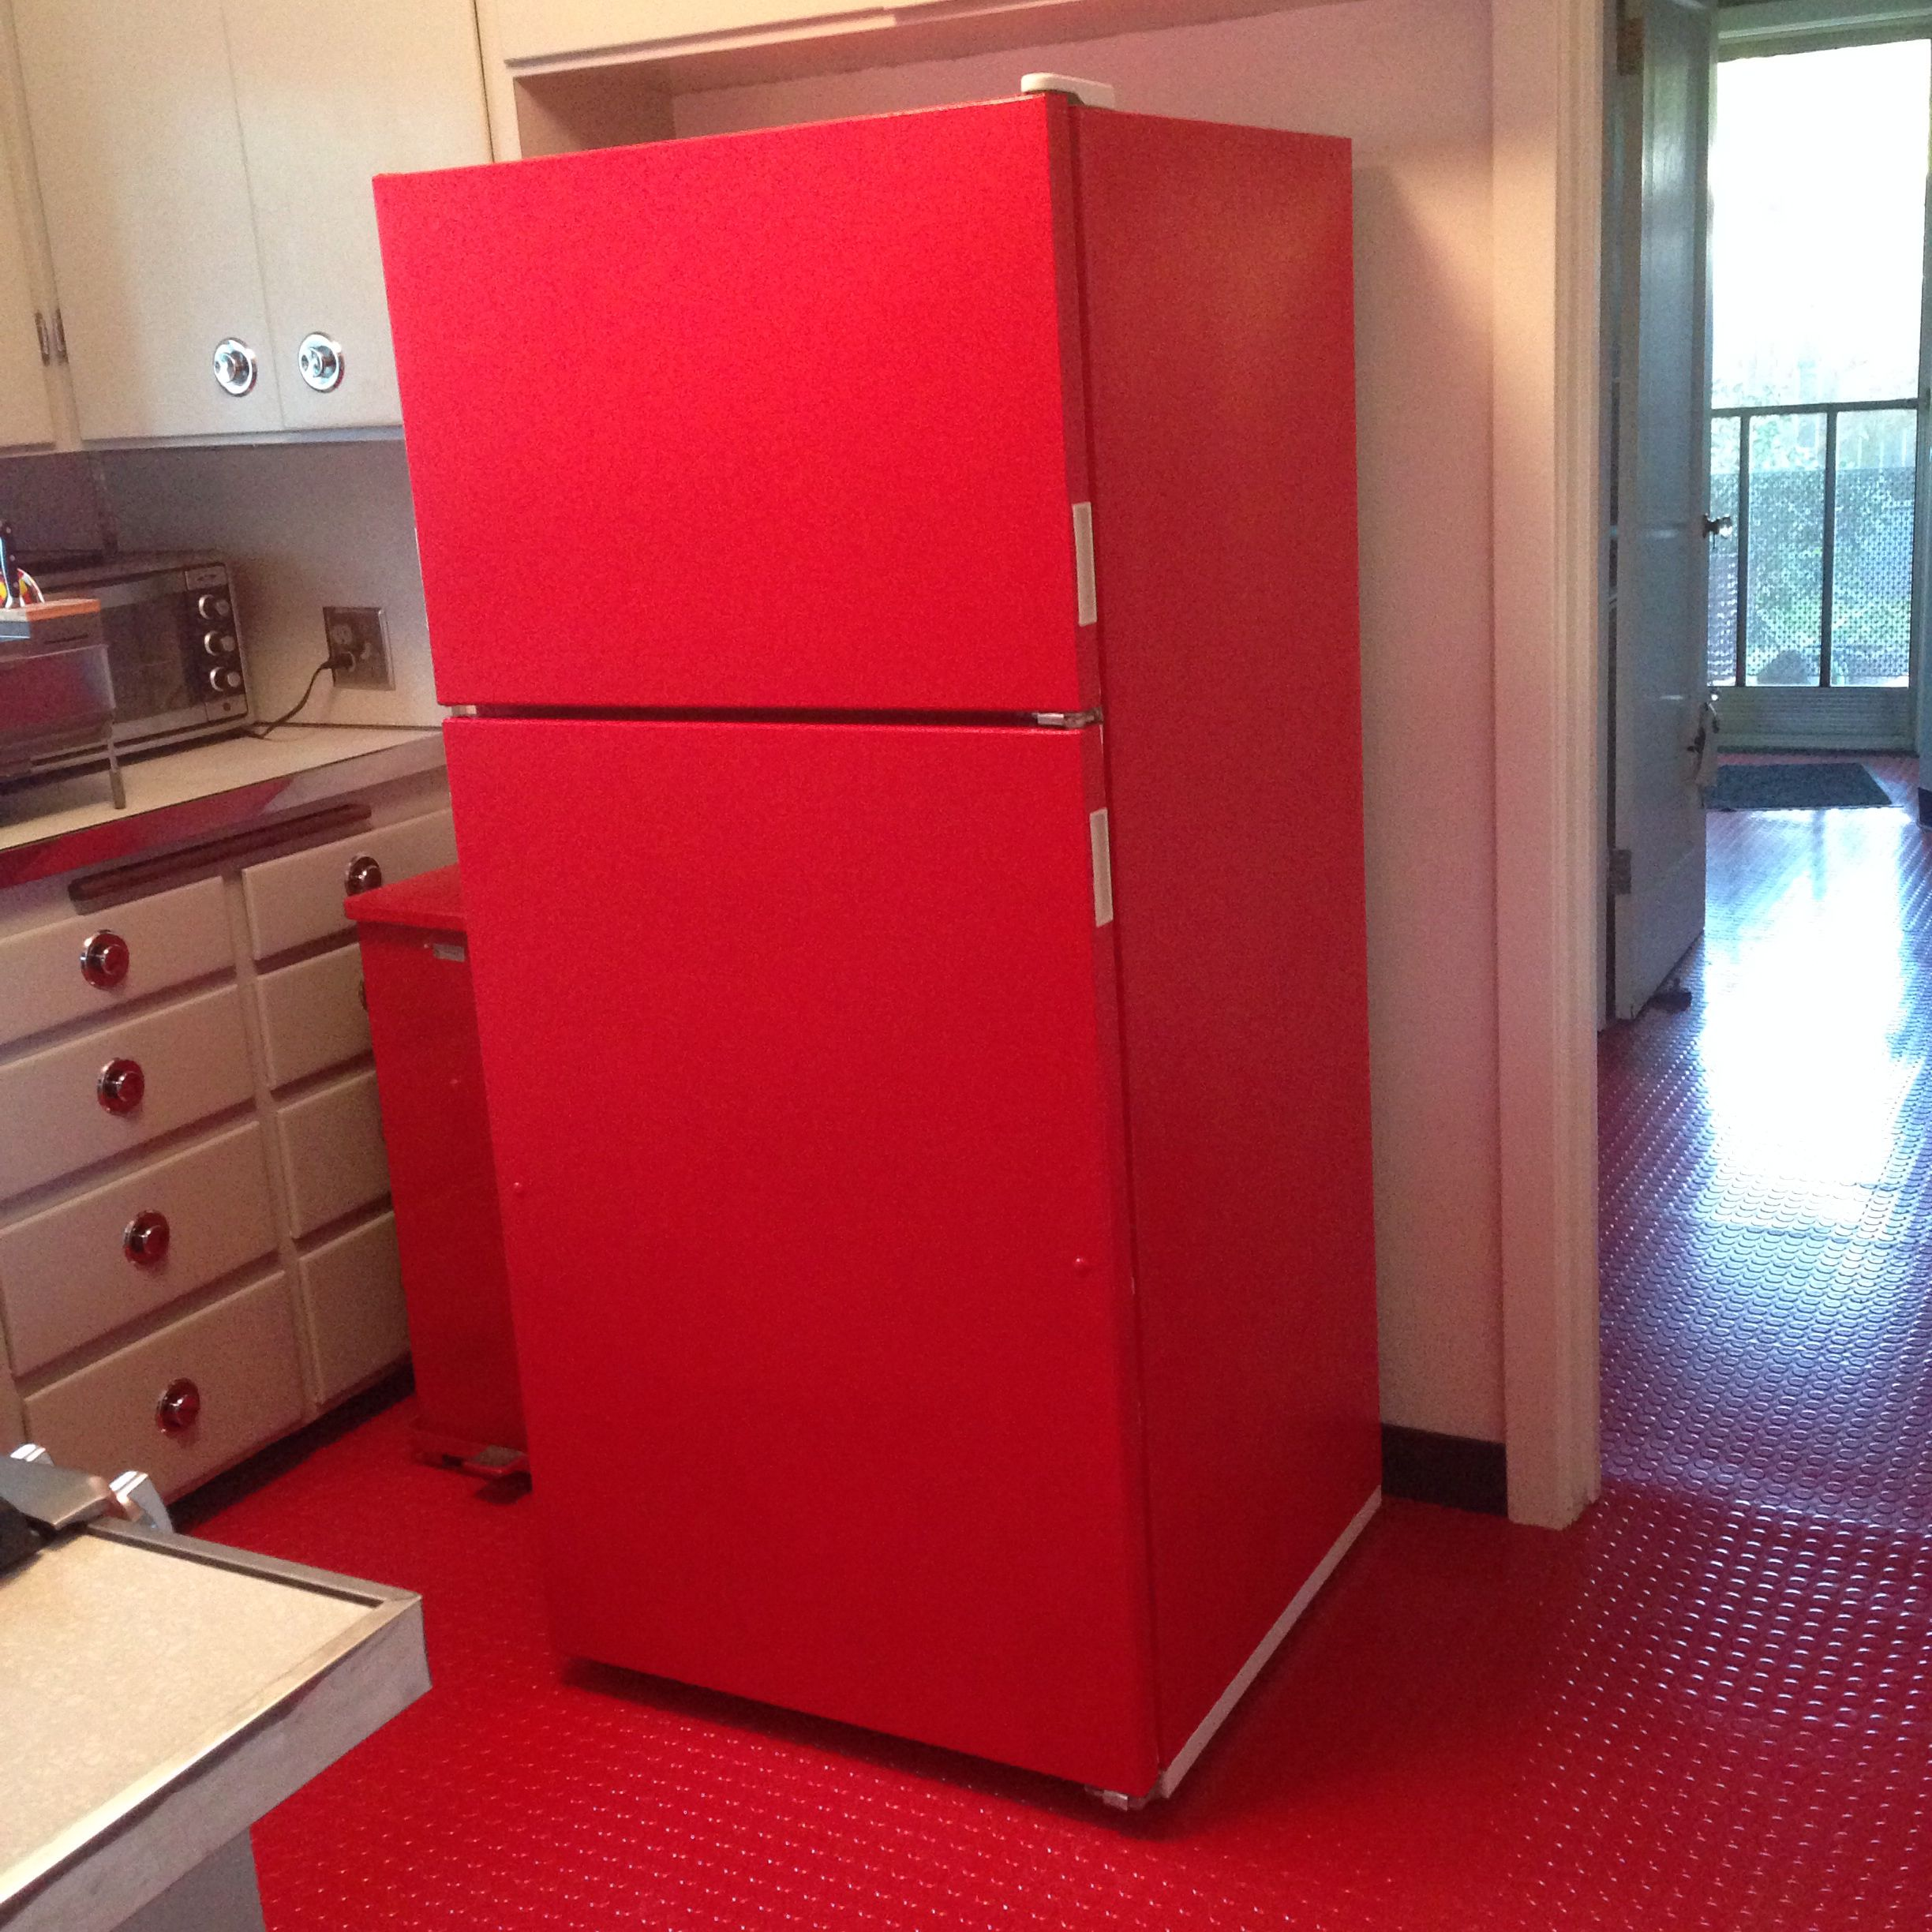 Is Semi Gloss Paint Best For Kitchen Cabinets: Painted The Fridge Red With Semi-gloss Interior Paint And